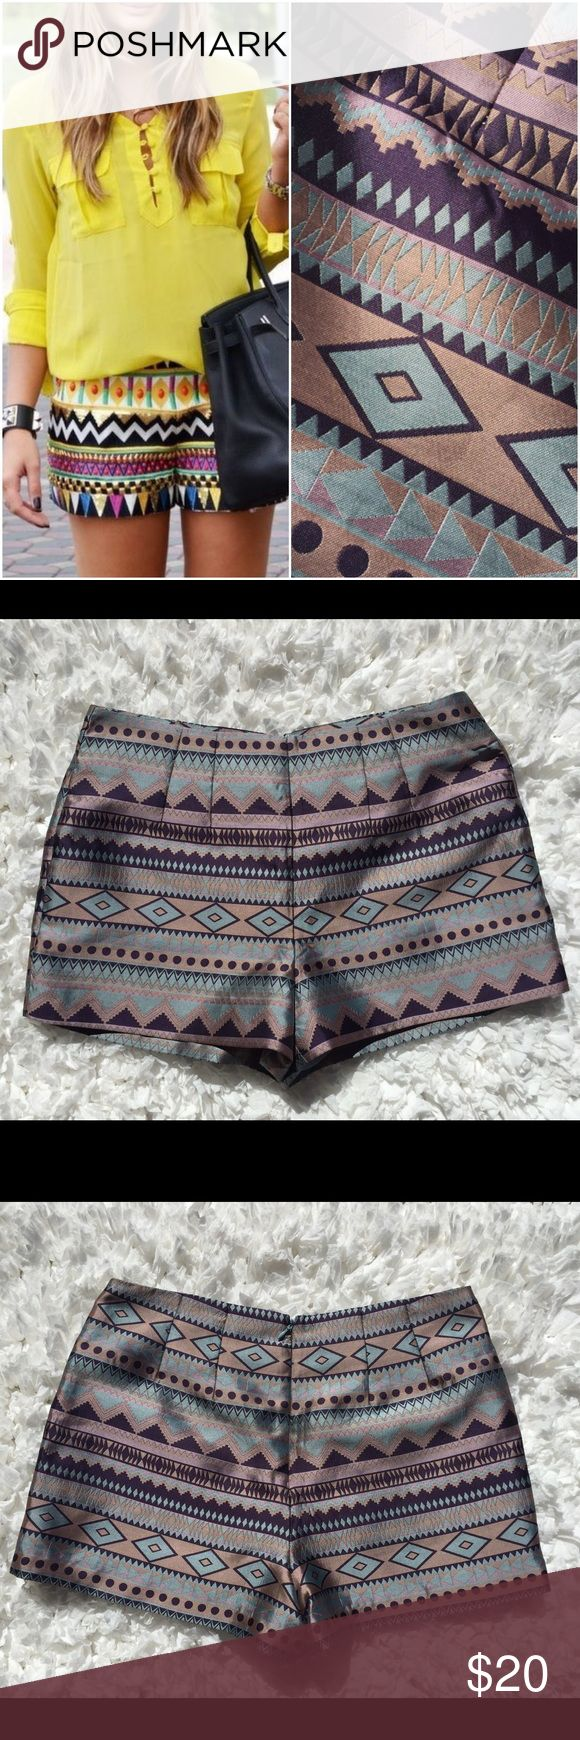 """Love 21 Aztec Tribal Print Dressy Shorts size S Gorgeous Love 21 Aztec Tribal Print Dressy Shorts size S. Shorts are lined. Zips up back and has hook/eye closure. Waist approx 30"""". Style photo is not mine and is for style suggestions only. 0222173250pc Love 21 Shorts"""